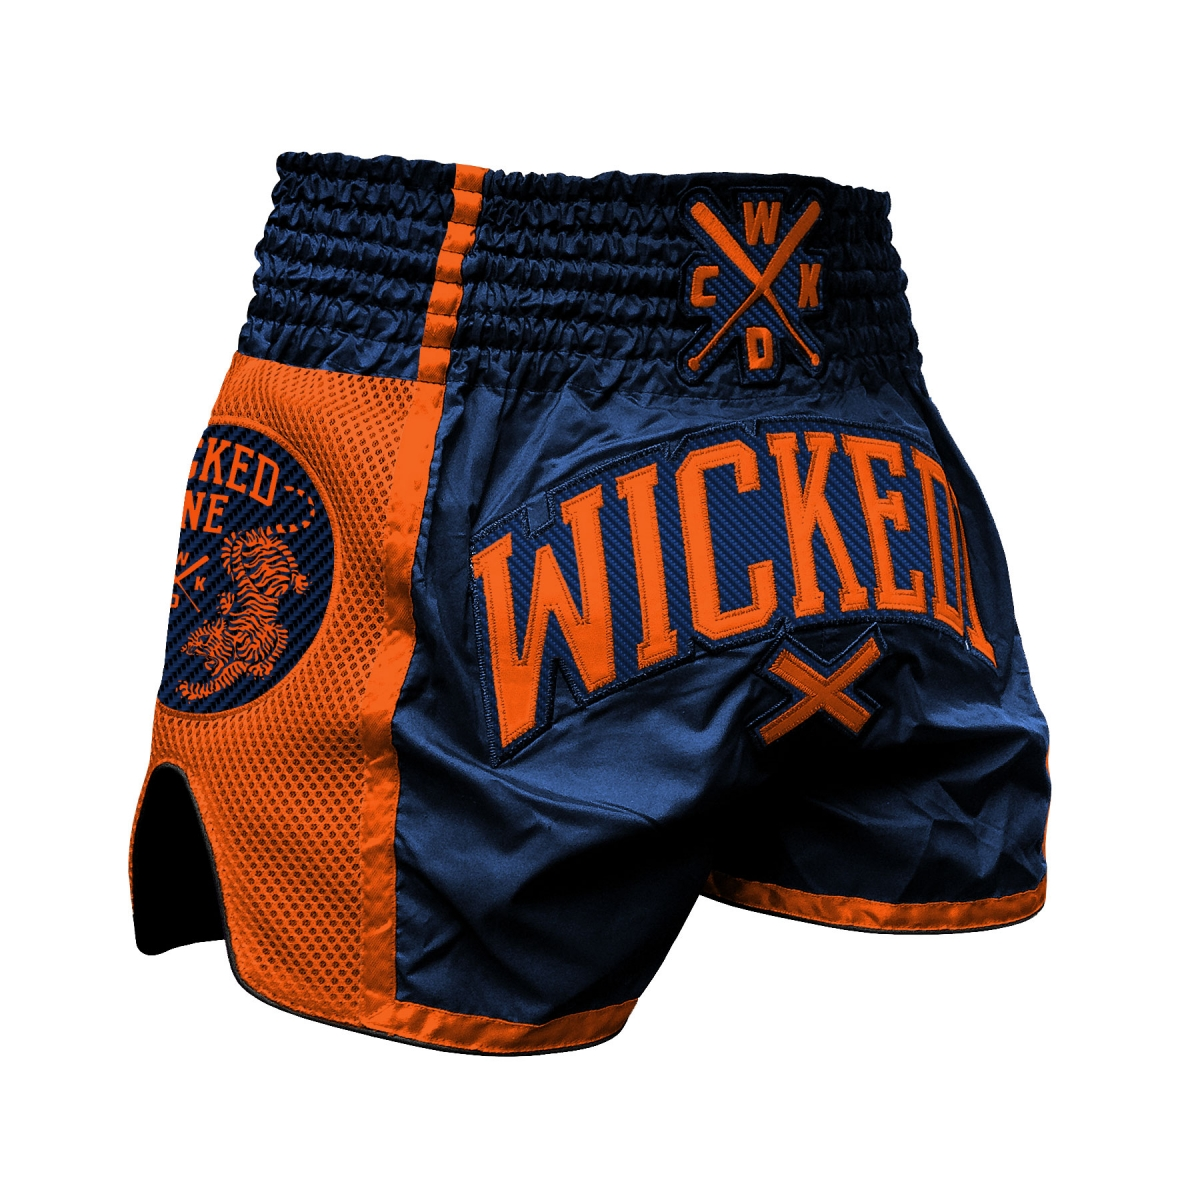 Short Wicked one Cross Orange